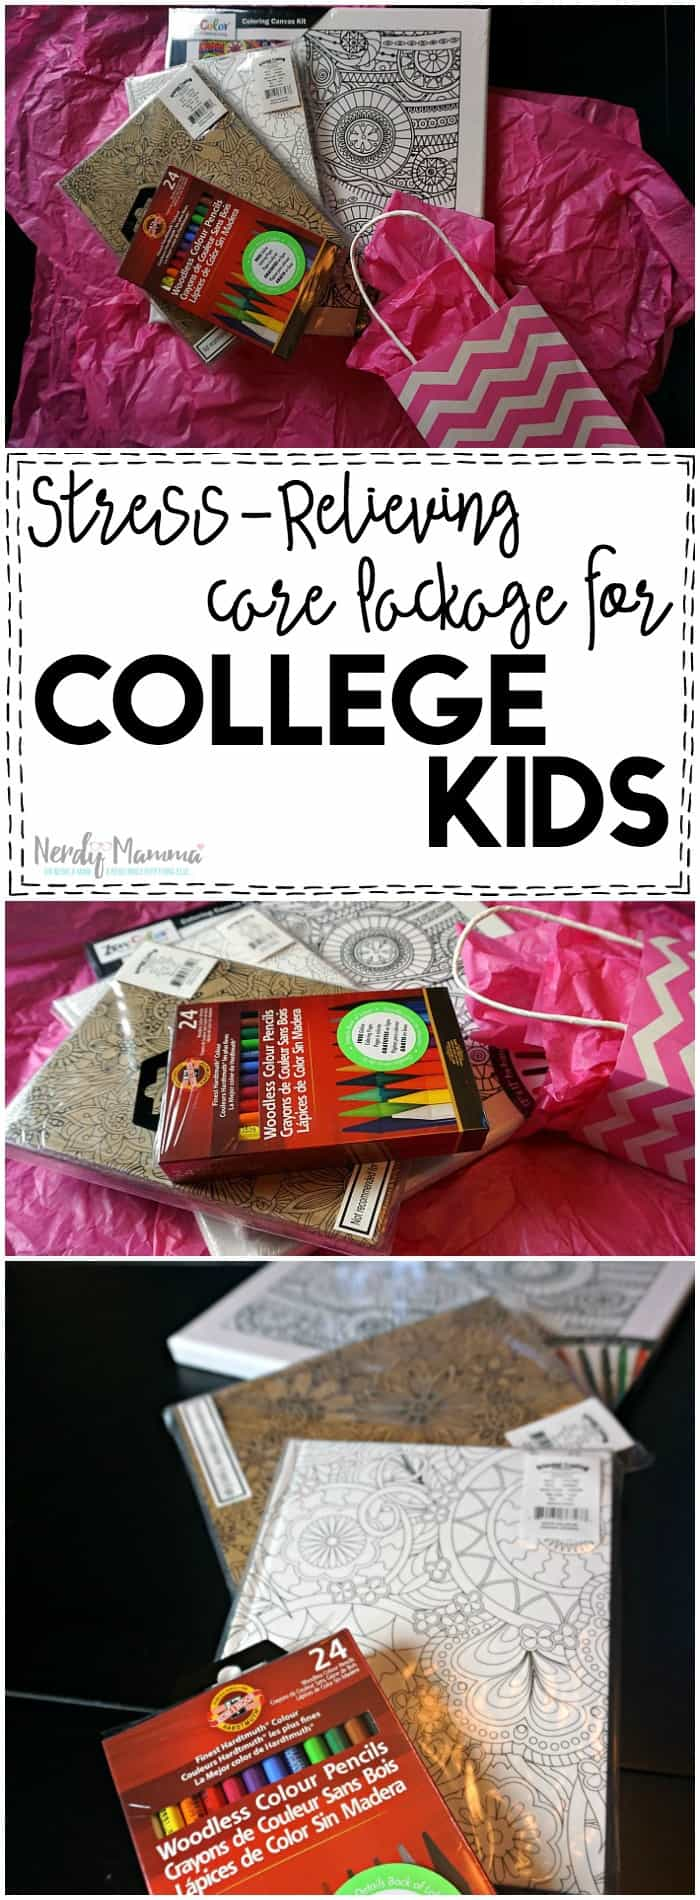 This Stress-Relieving Care Package for College Kids is kind of genius. I love the idea!